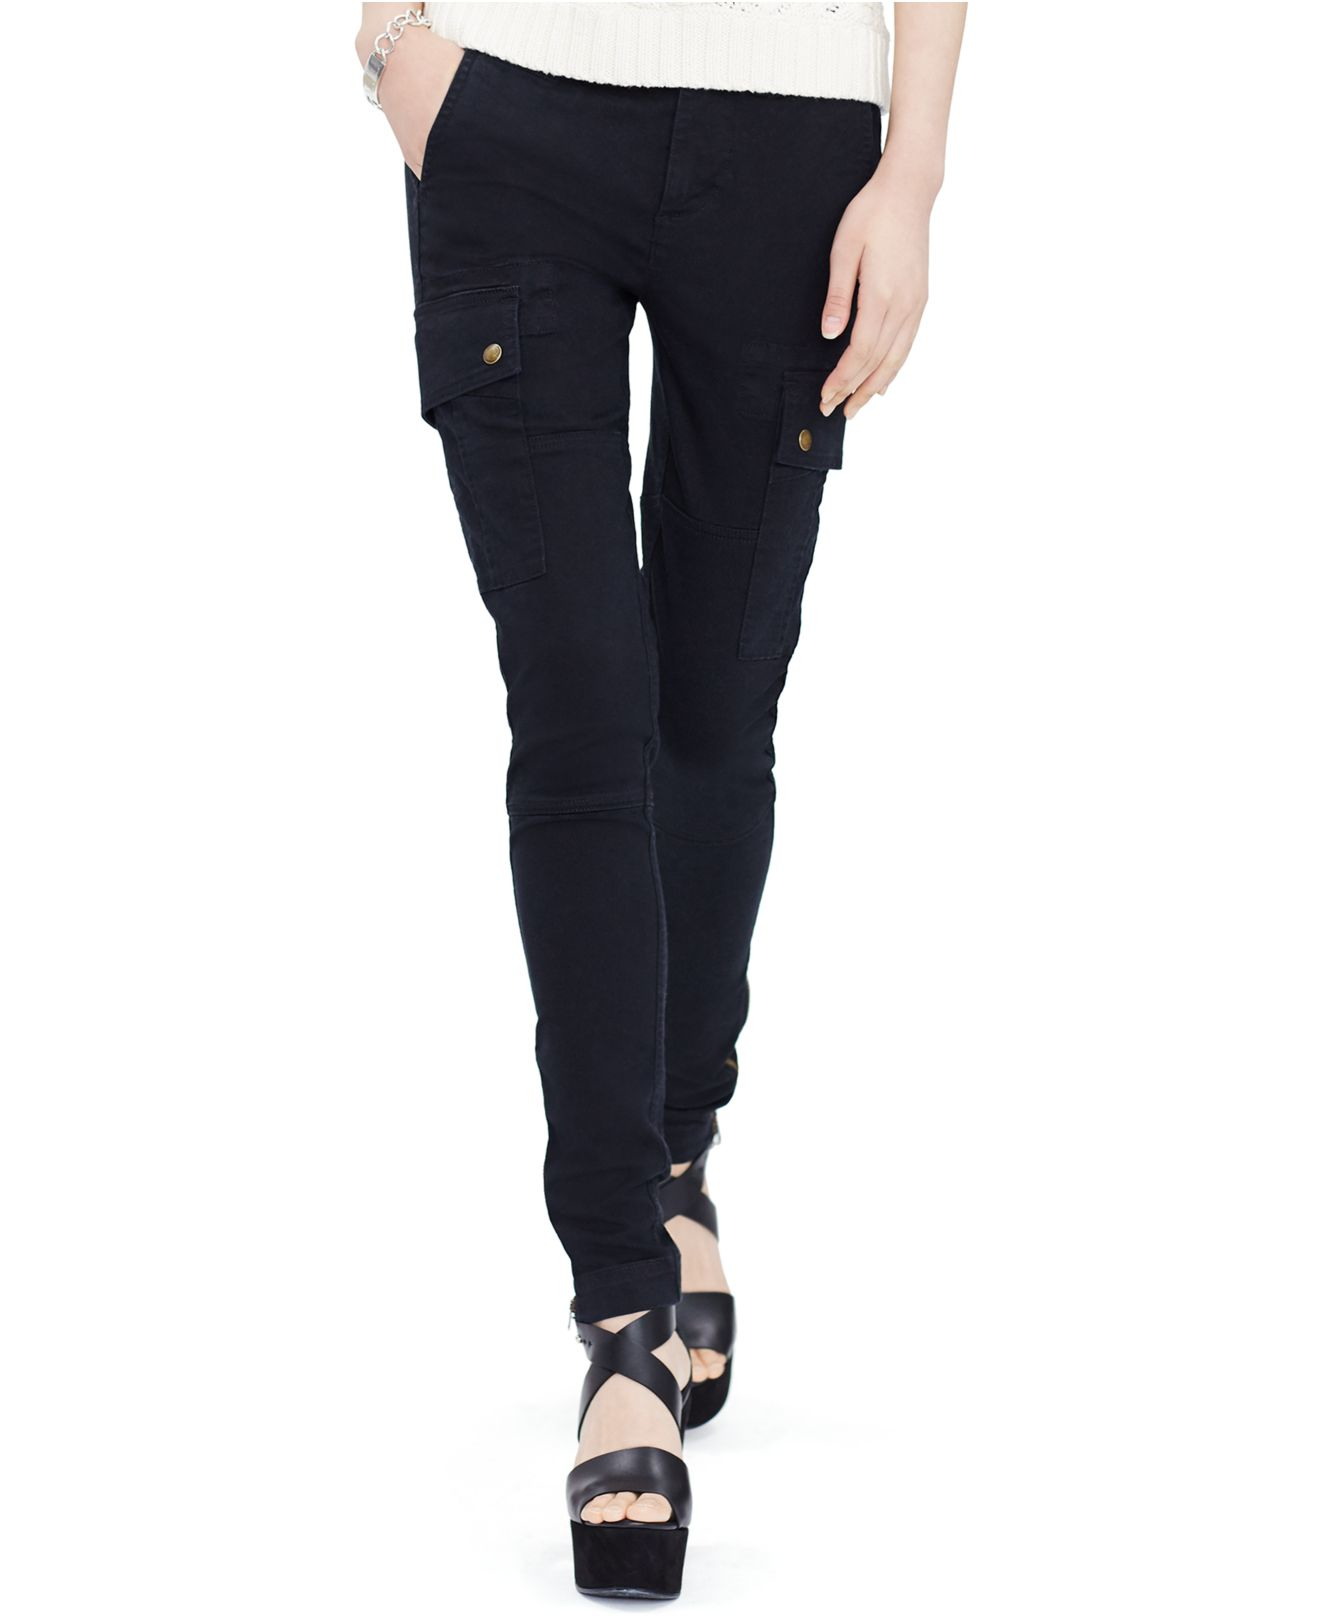 Awesome For Women, Cargo Pants Are Offered In A Variety Of Softer Fabrics And Colors, Sometimes With Ribbon Trim Or Embellishments US Fashion Designer Ralph Lauren Presented Silk Cargo Pants As Part Of His Runway Show In 1998